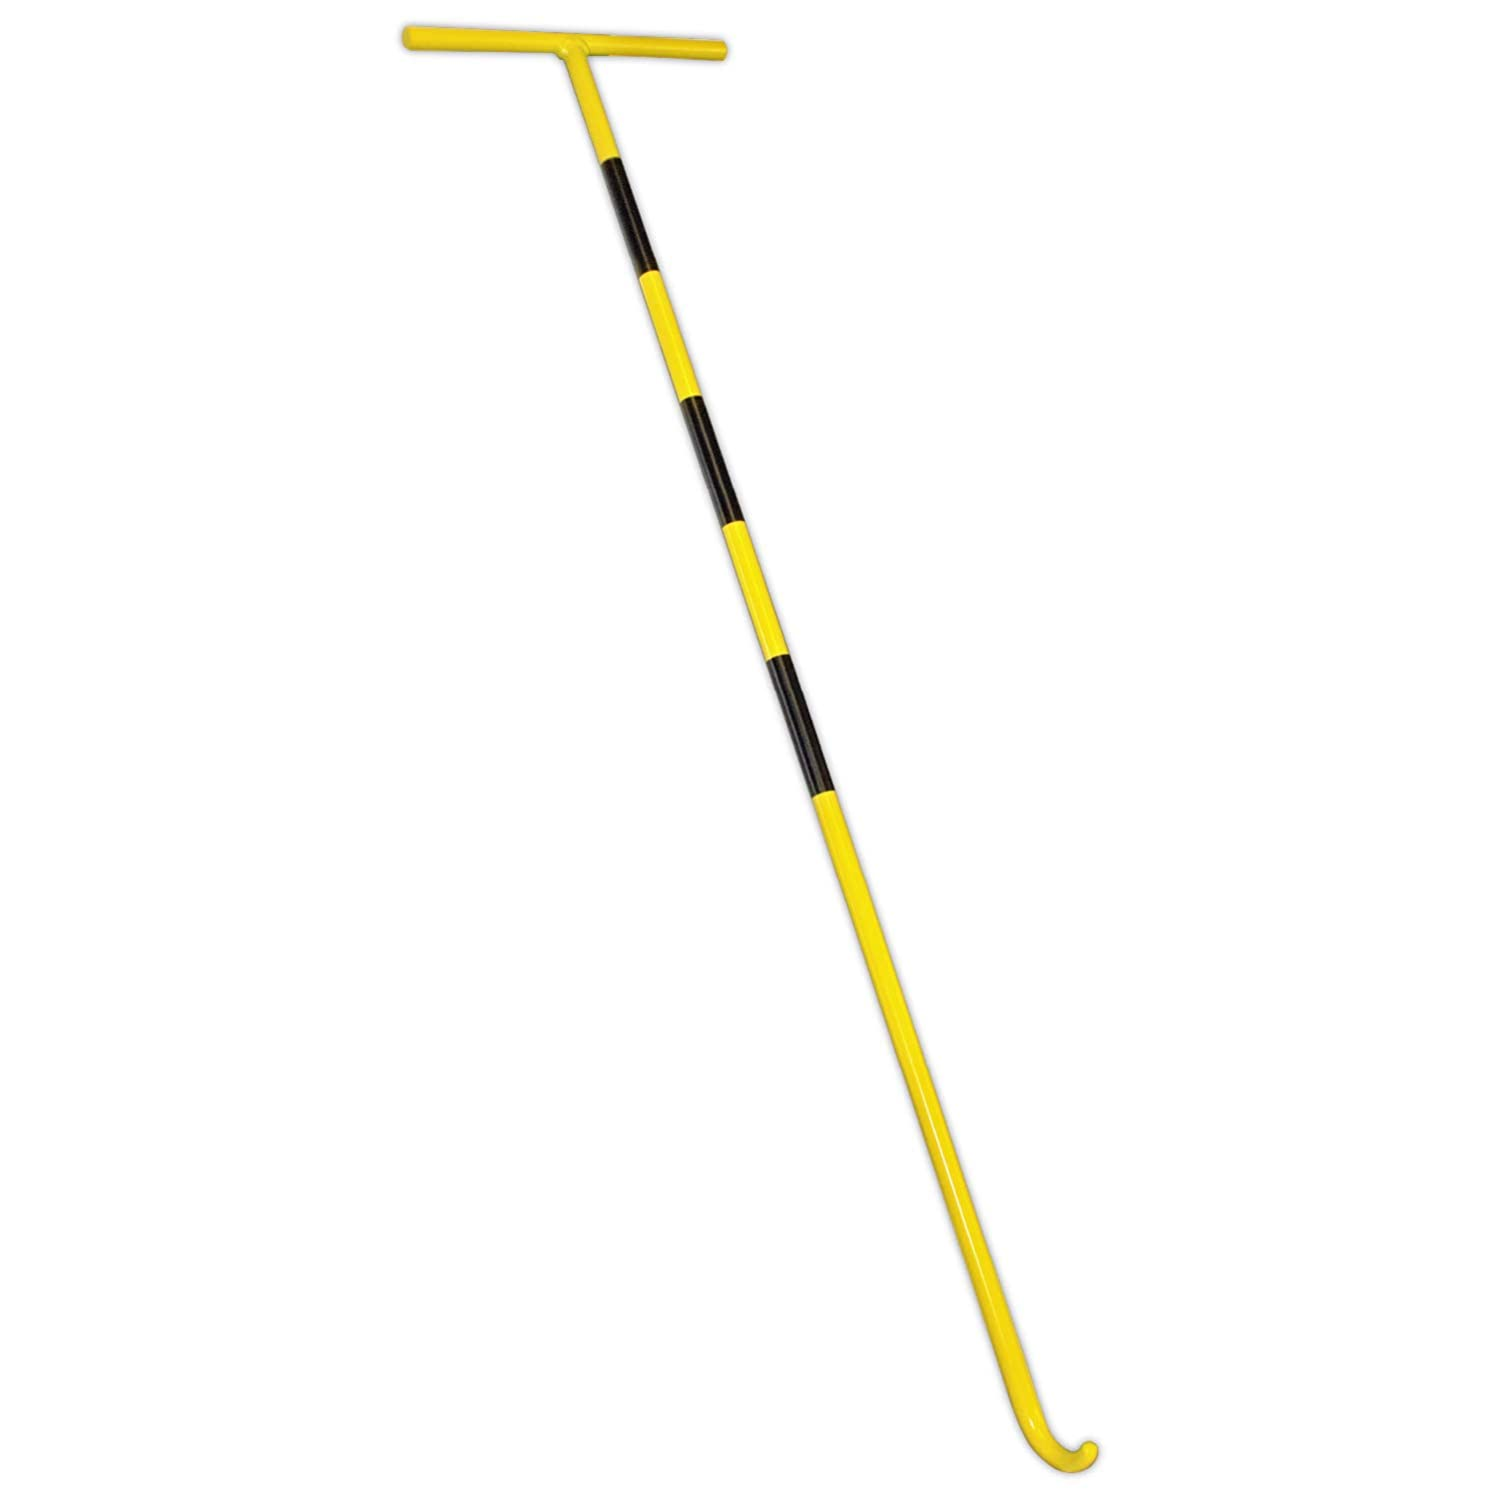 Wheel Pin Puller 32/'/' Pulling Hook for Dockleveler Each Pack Contains 2 Pieces Manhole Cover Hook 8 NET T-Style Handle